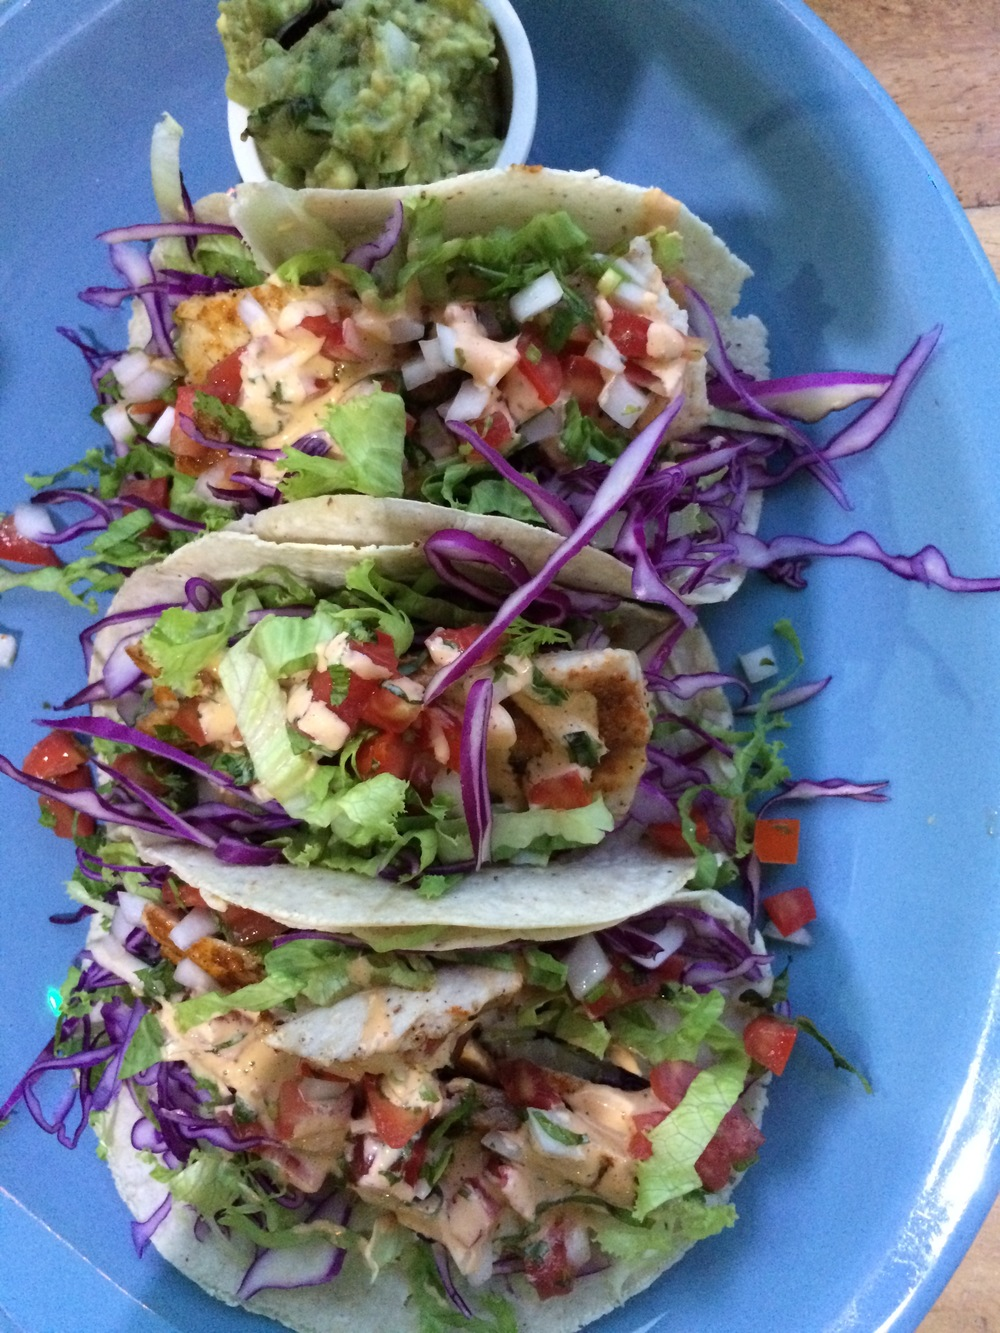 Some other fantastic fish tacos from a restaurant called Turtle Bay.